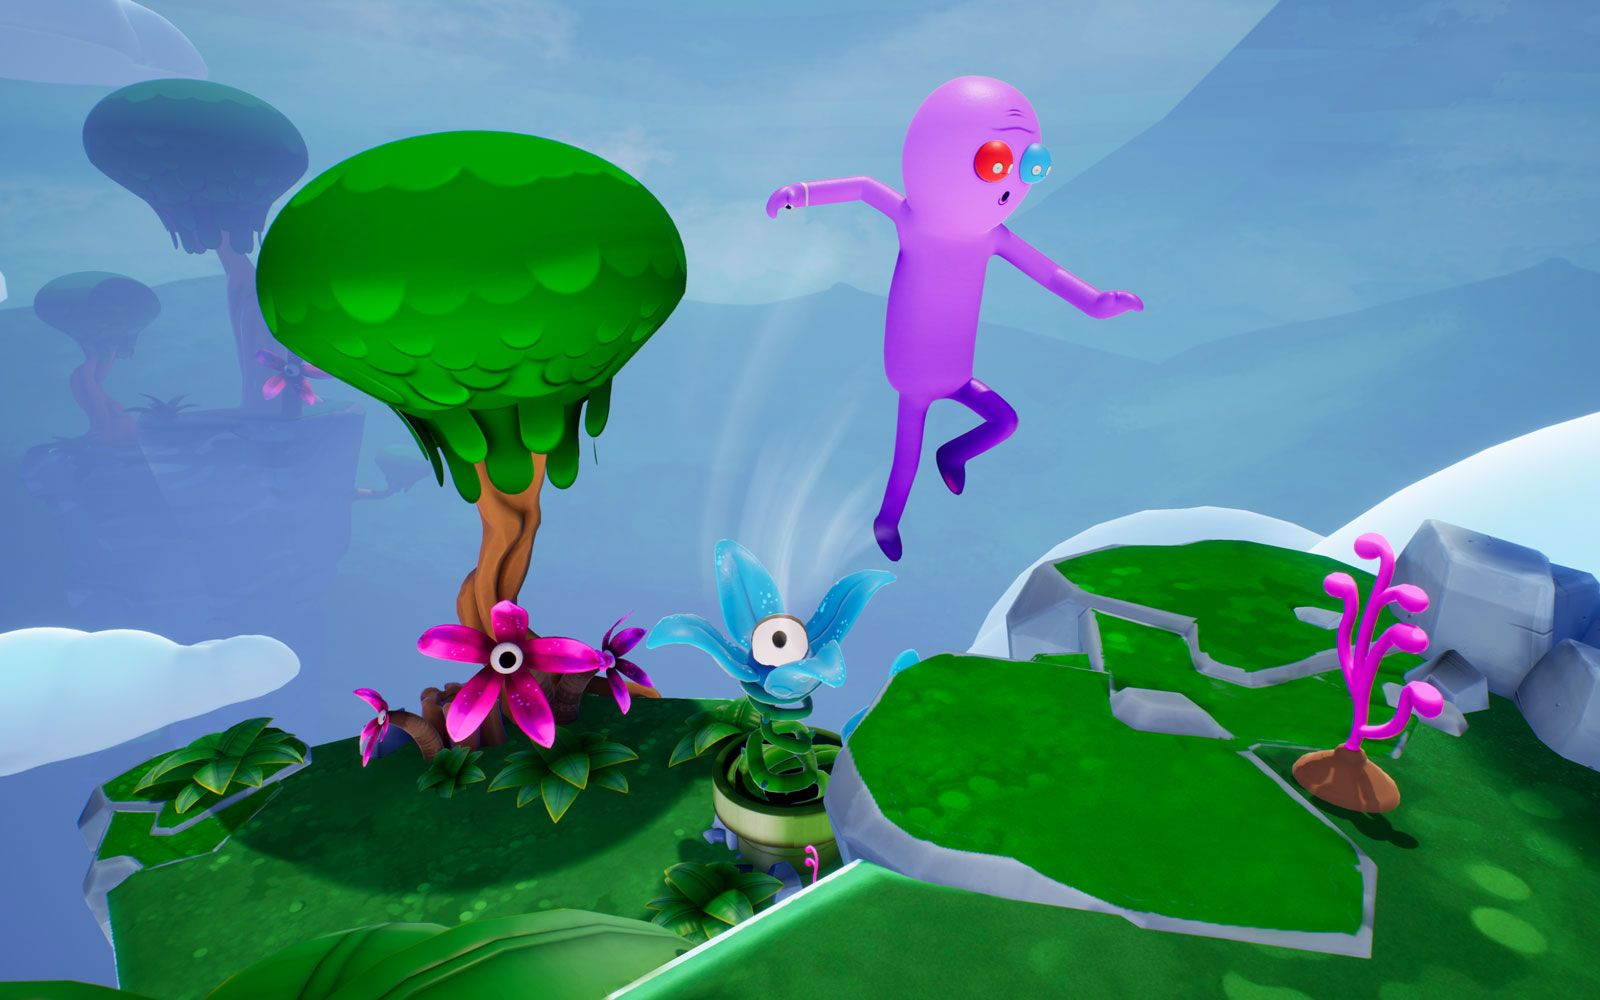 Squanch Games Announces Trover Saves the Universe, for PS4 and PSVR